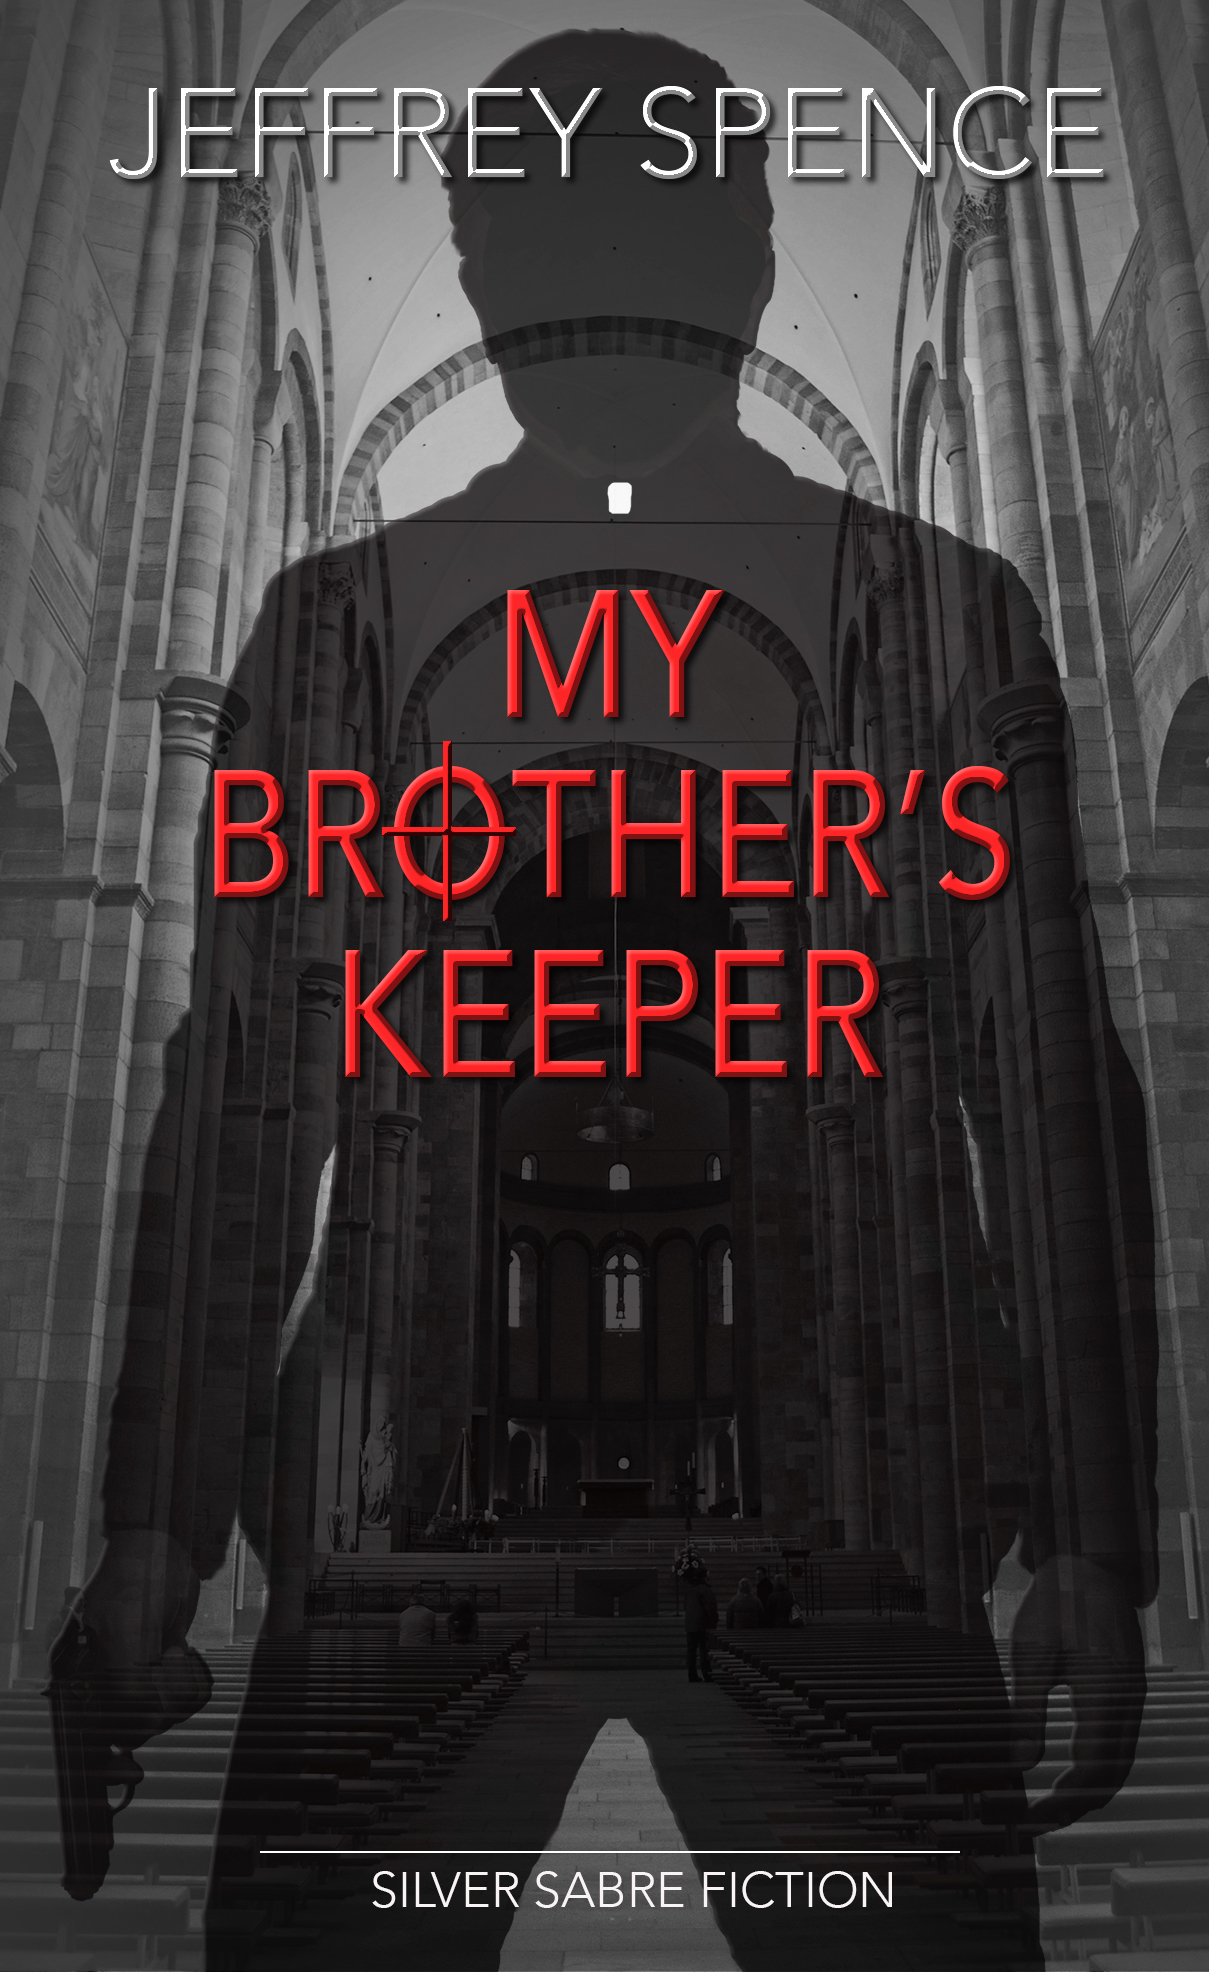 IDT01 5 My Brothers Keeper cover eBook.jpg